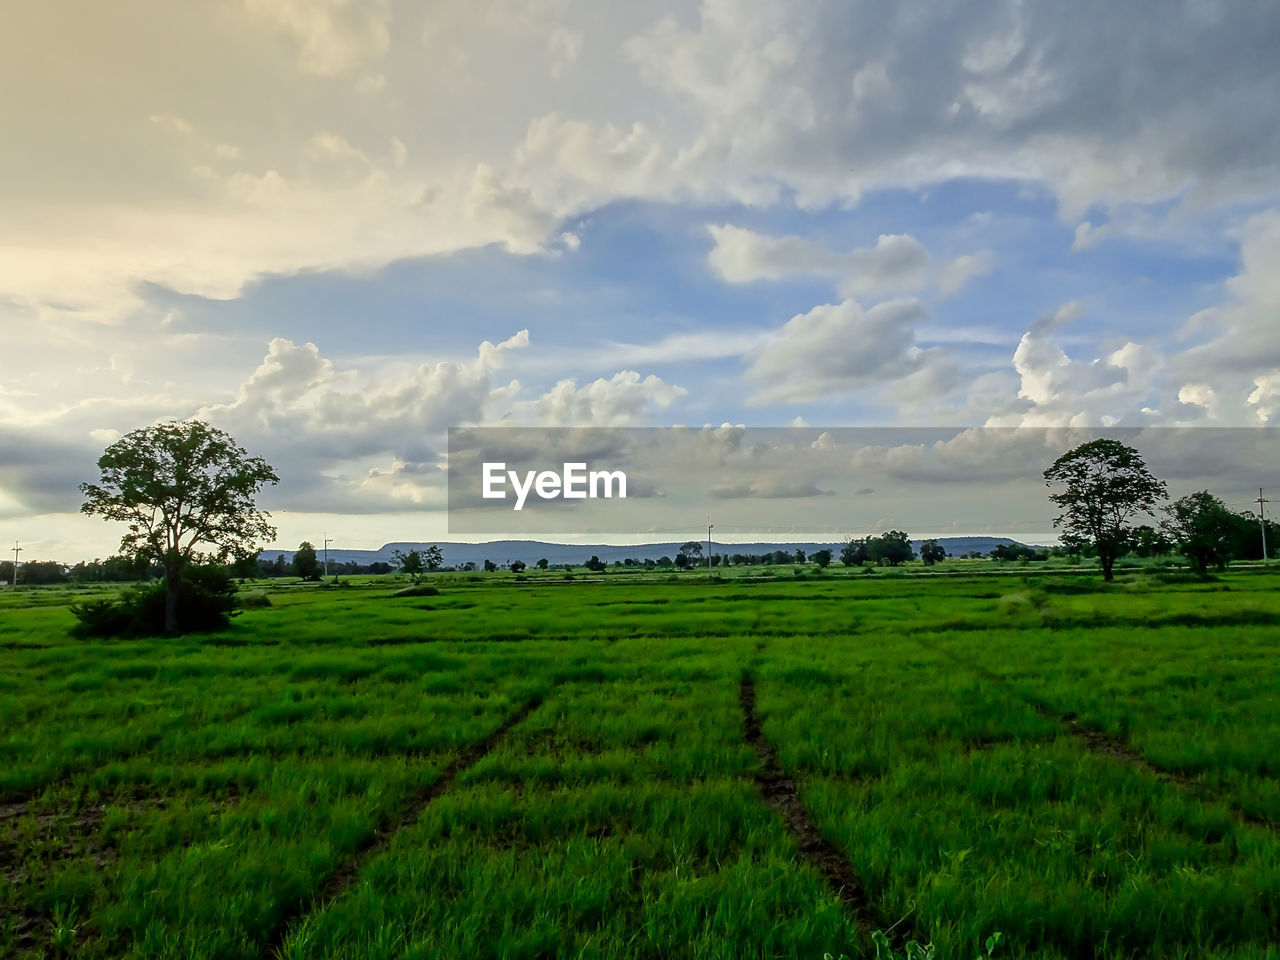 landscape, cloud - sky, plant, environment, field, sky, land, agriculture, scenics - nature, growth, beauty in nature, rural scene, tranquil scene, tranquility, green color, farm, nature, tree, crop, no people, outdoors, plantation